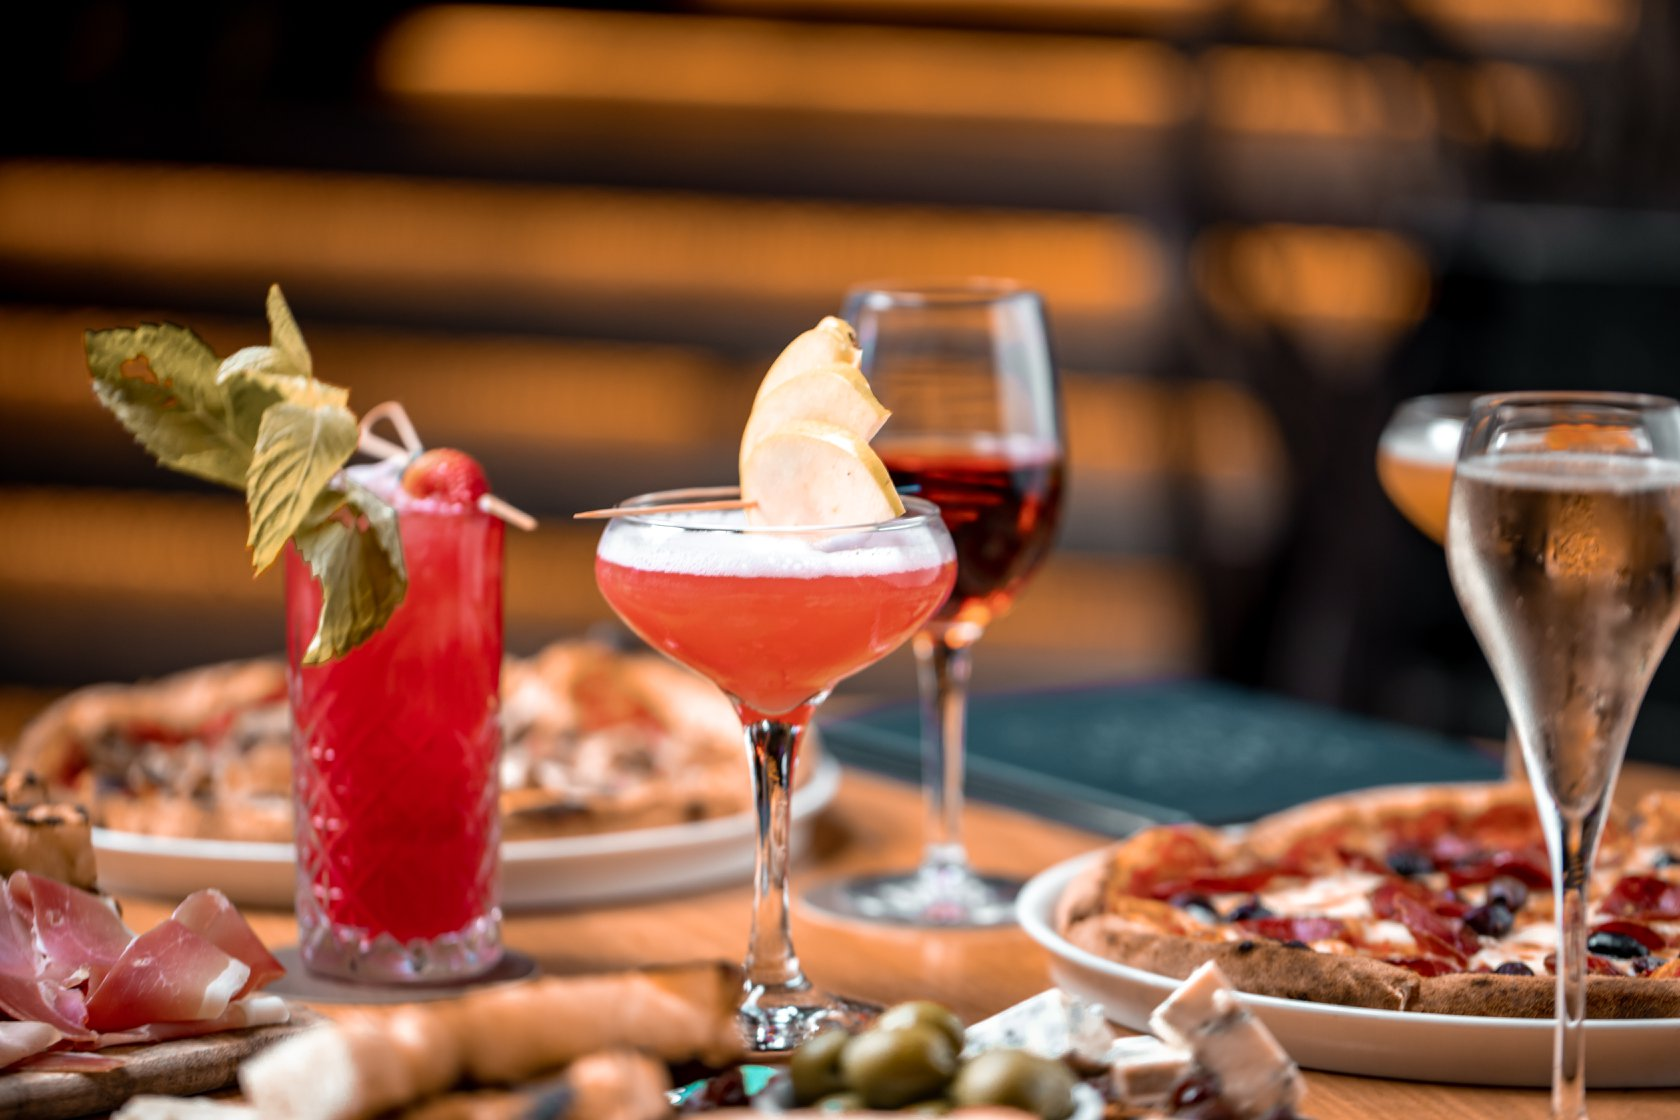 several cocktails on a table with plates of Italian food